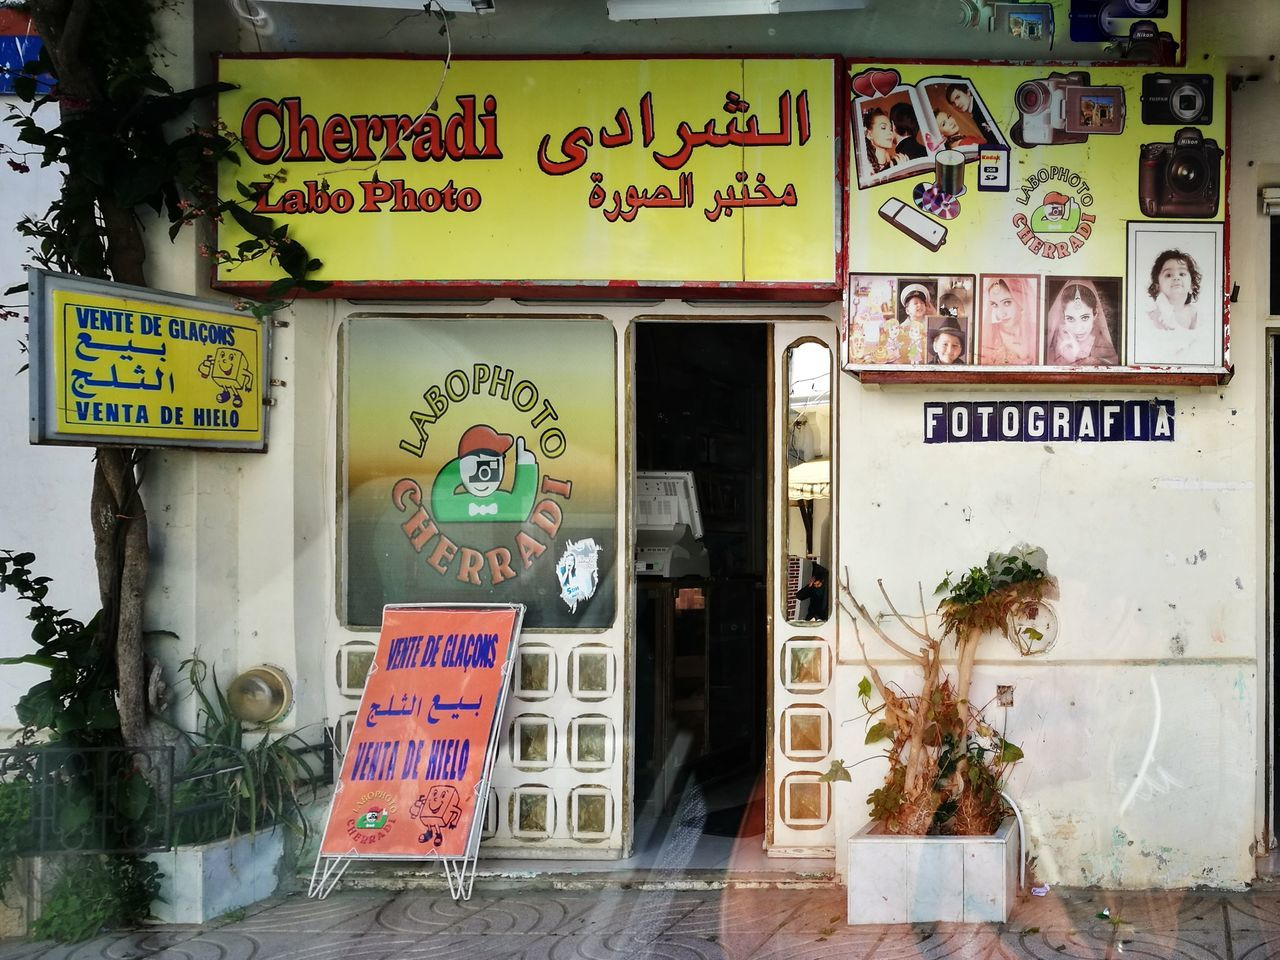 Seen driving by - I would have liked a closer look Drivebyphotography Shop Photography Travel Enjoying Life Hello World Morocco Travel Photography Eye4photography  See The World From My Point Of View Tadaa Community Carwindow Carwindowphotography in Asilah